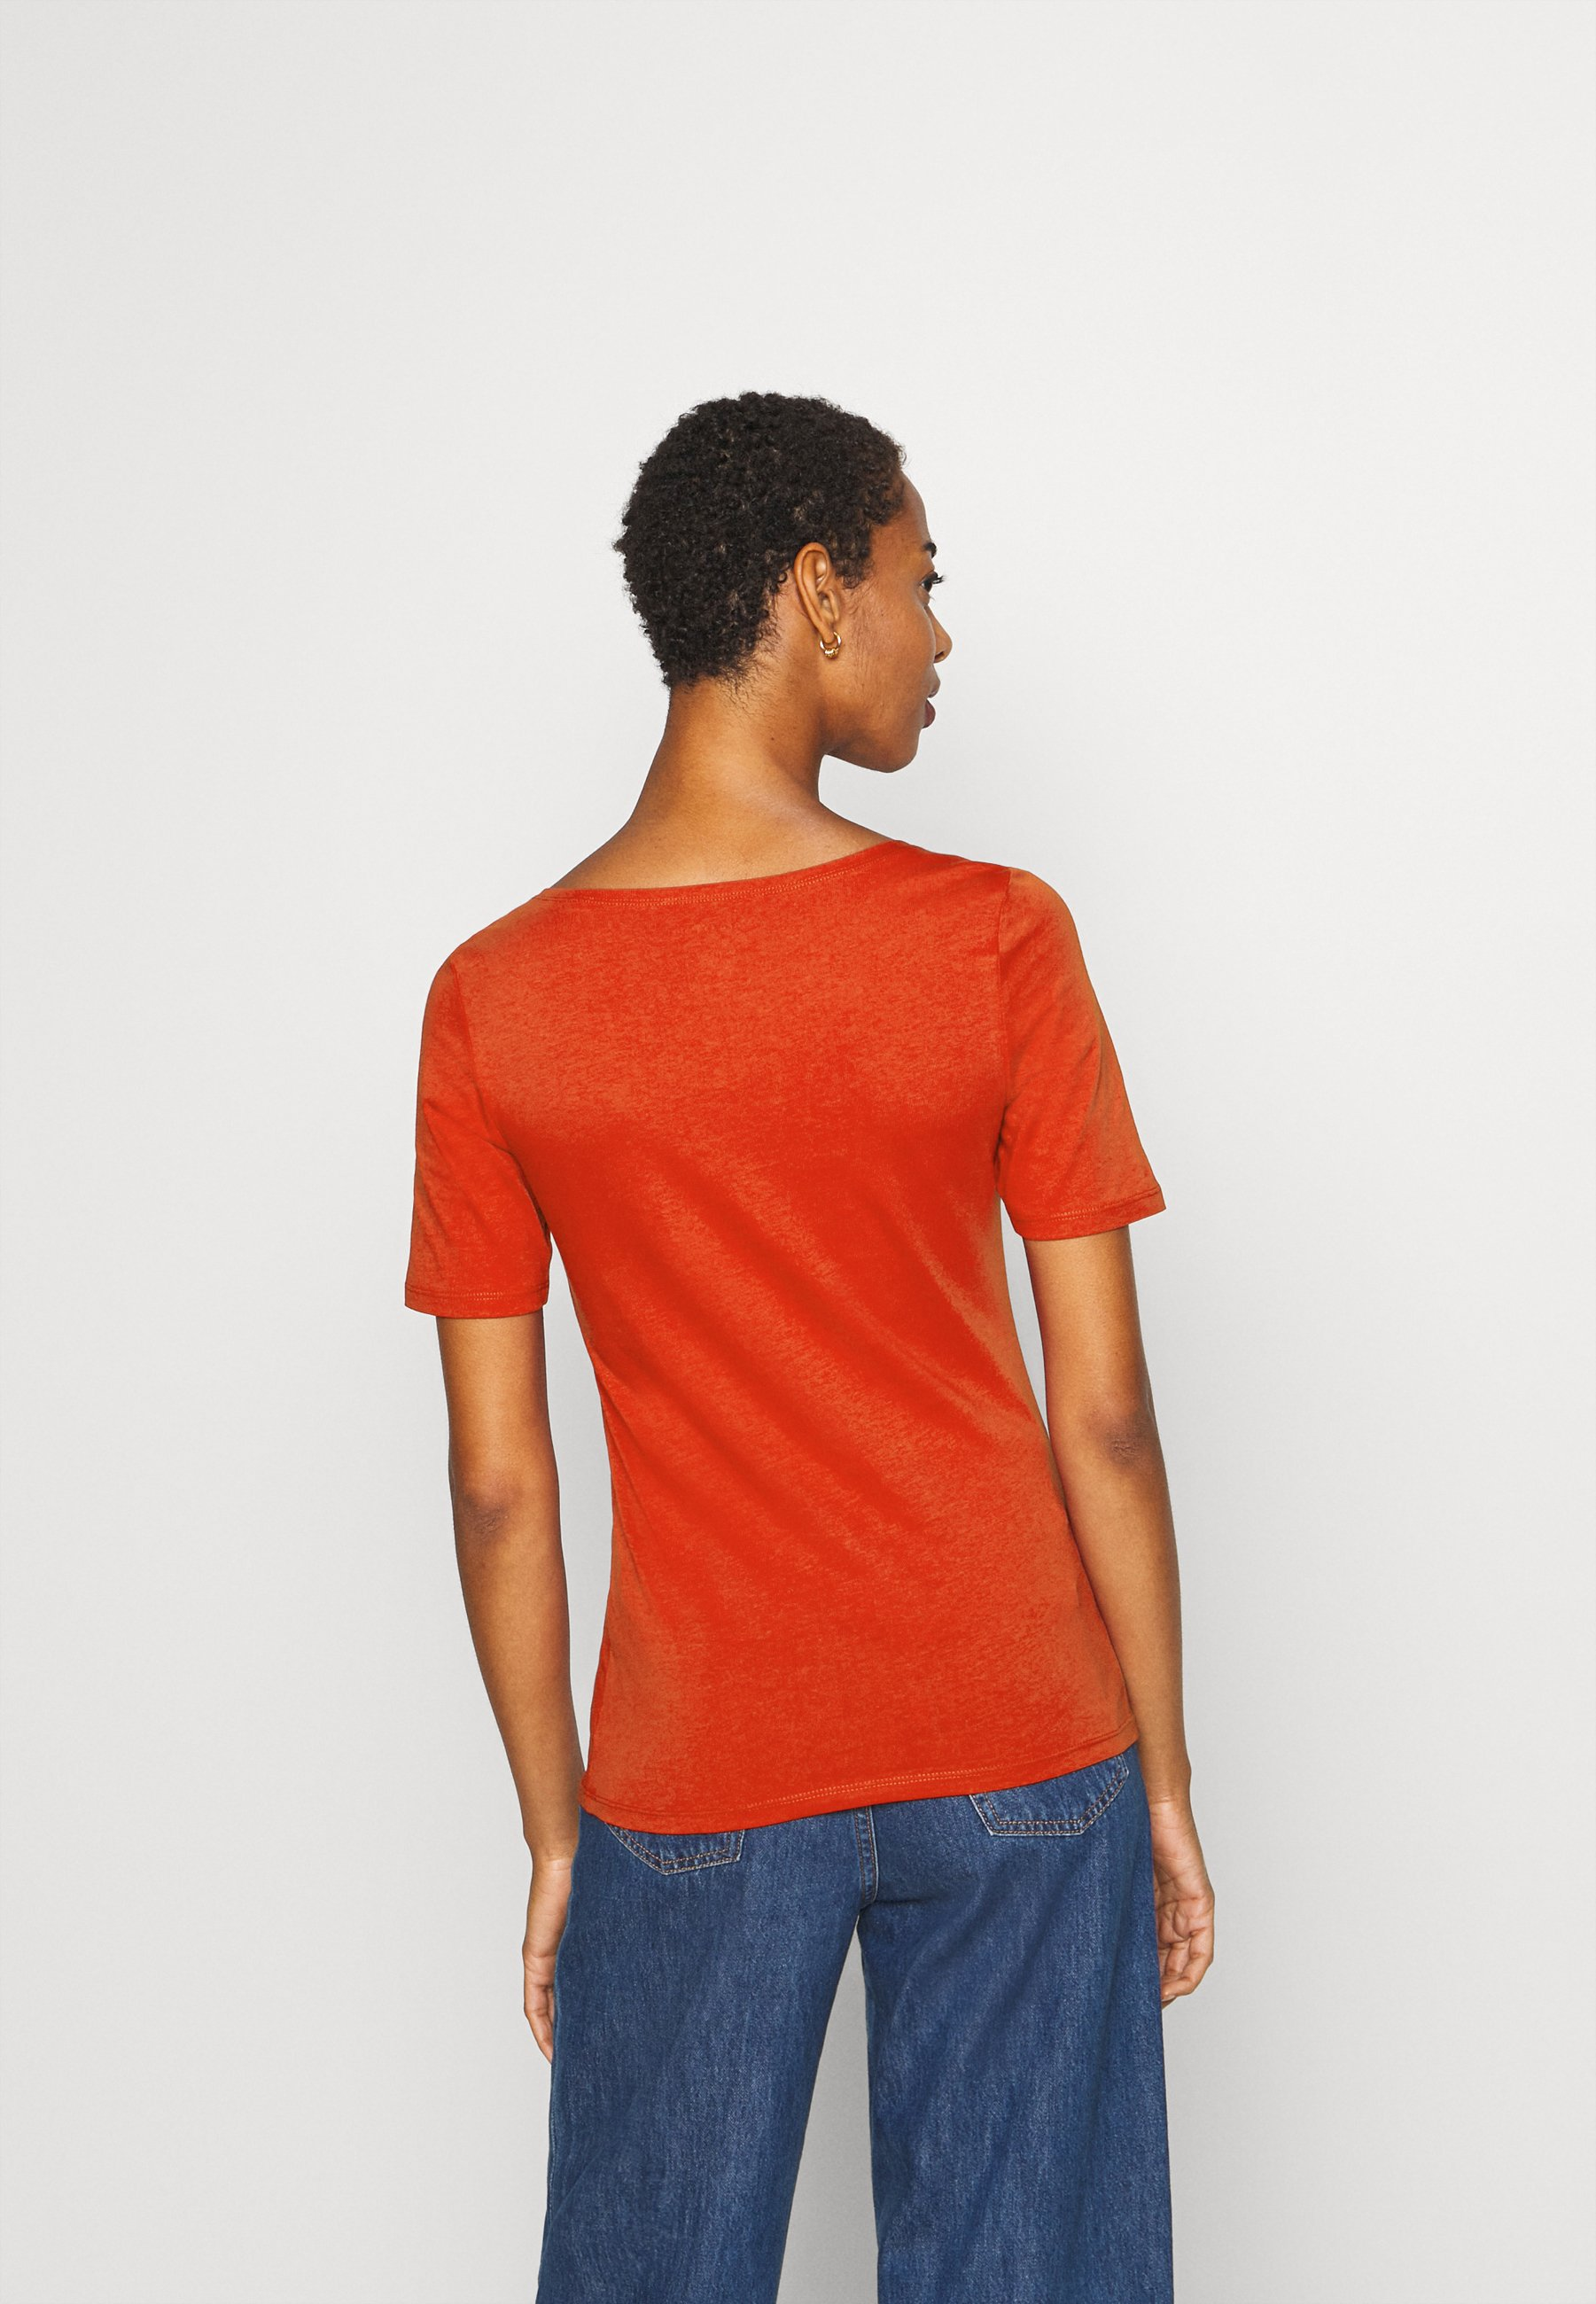 Marc O'polo Short Sleeve Round Neck Solid - T-shirts Med Print Bright Seaberry/rød